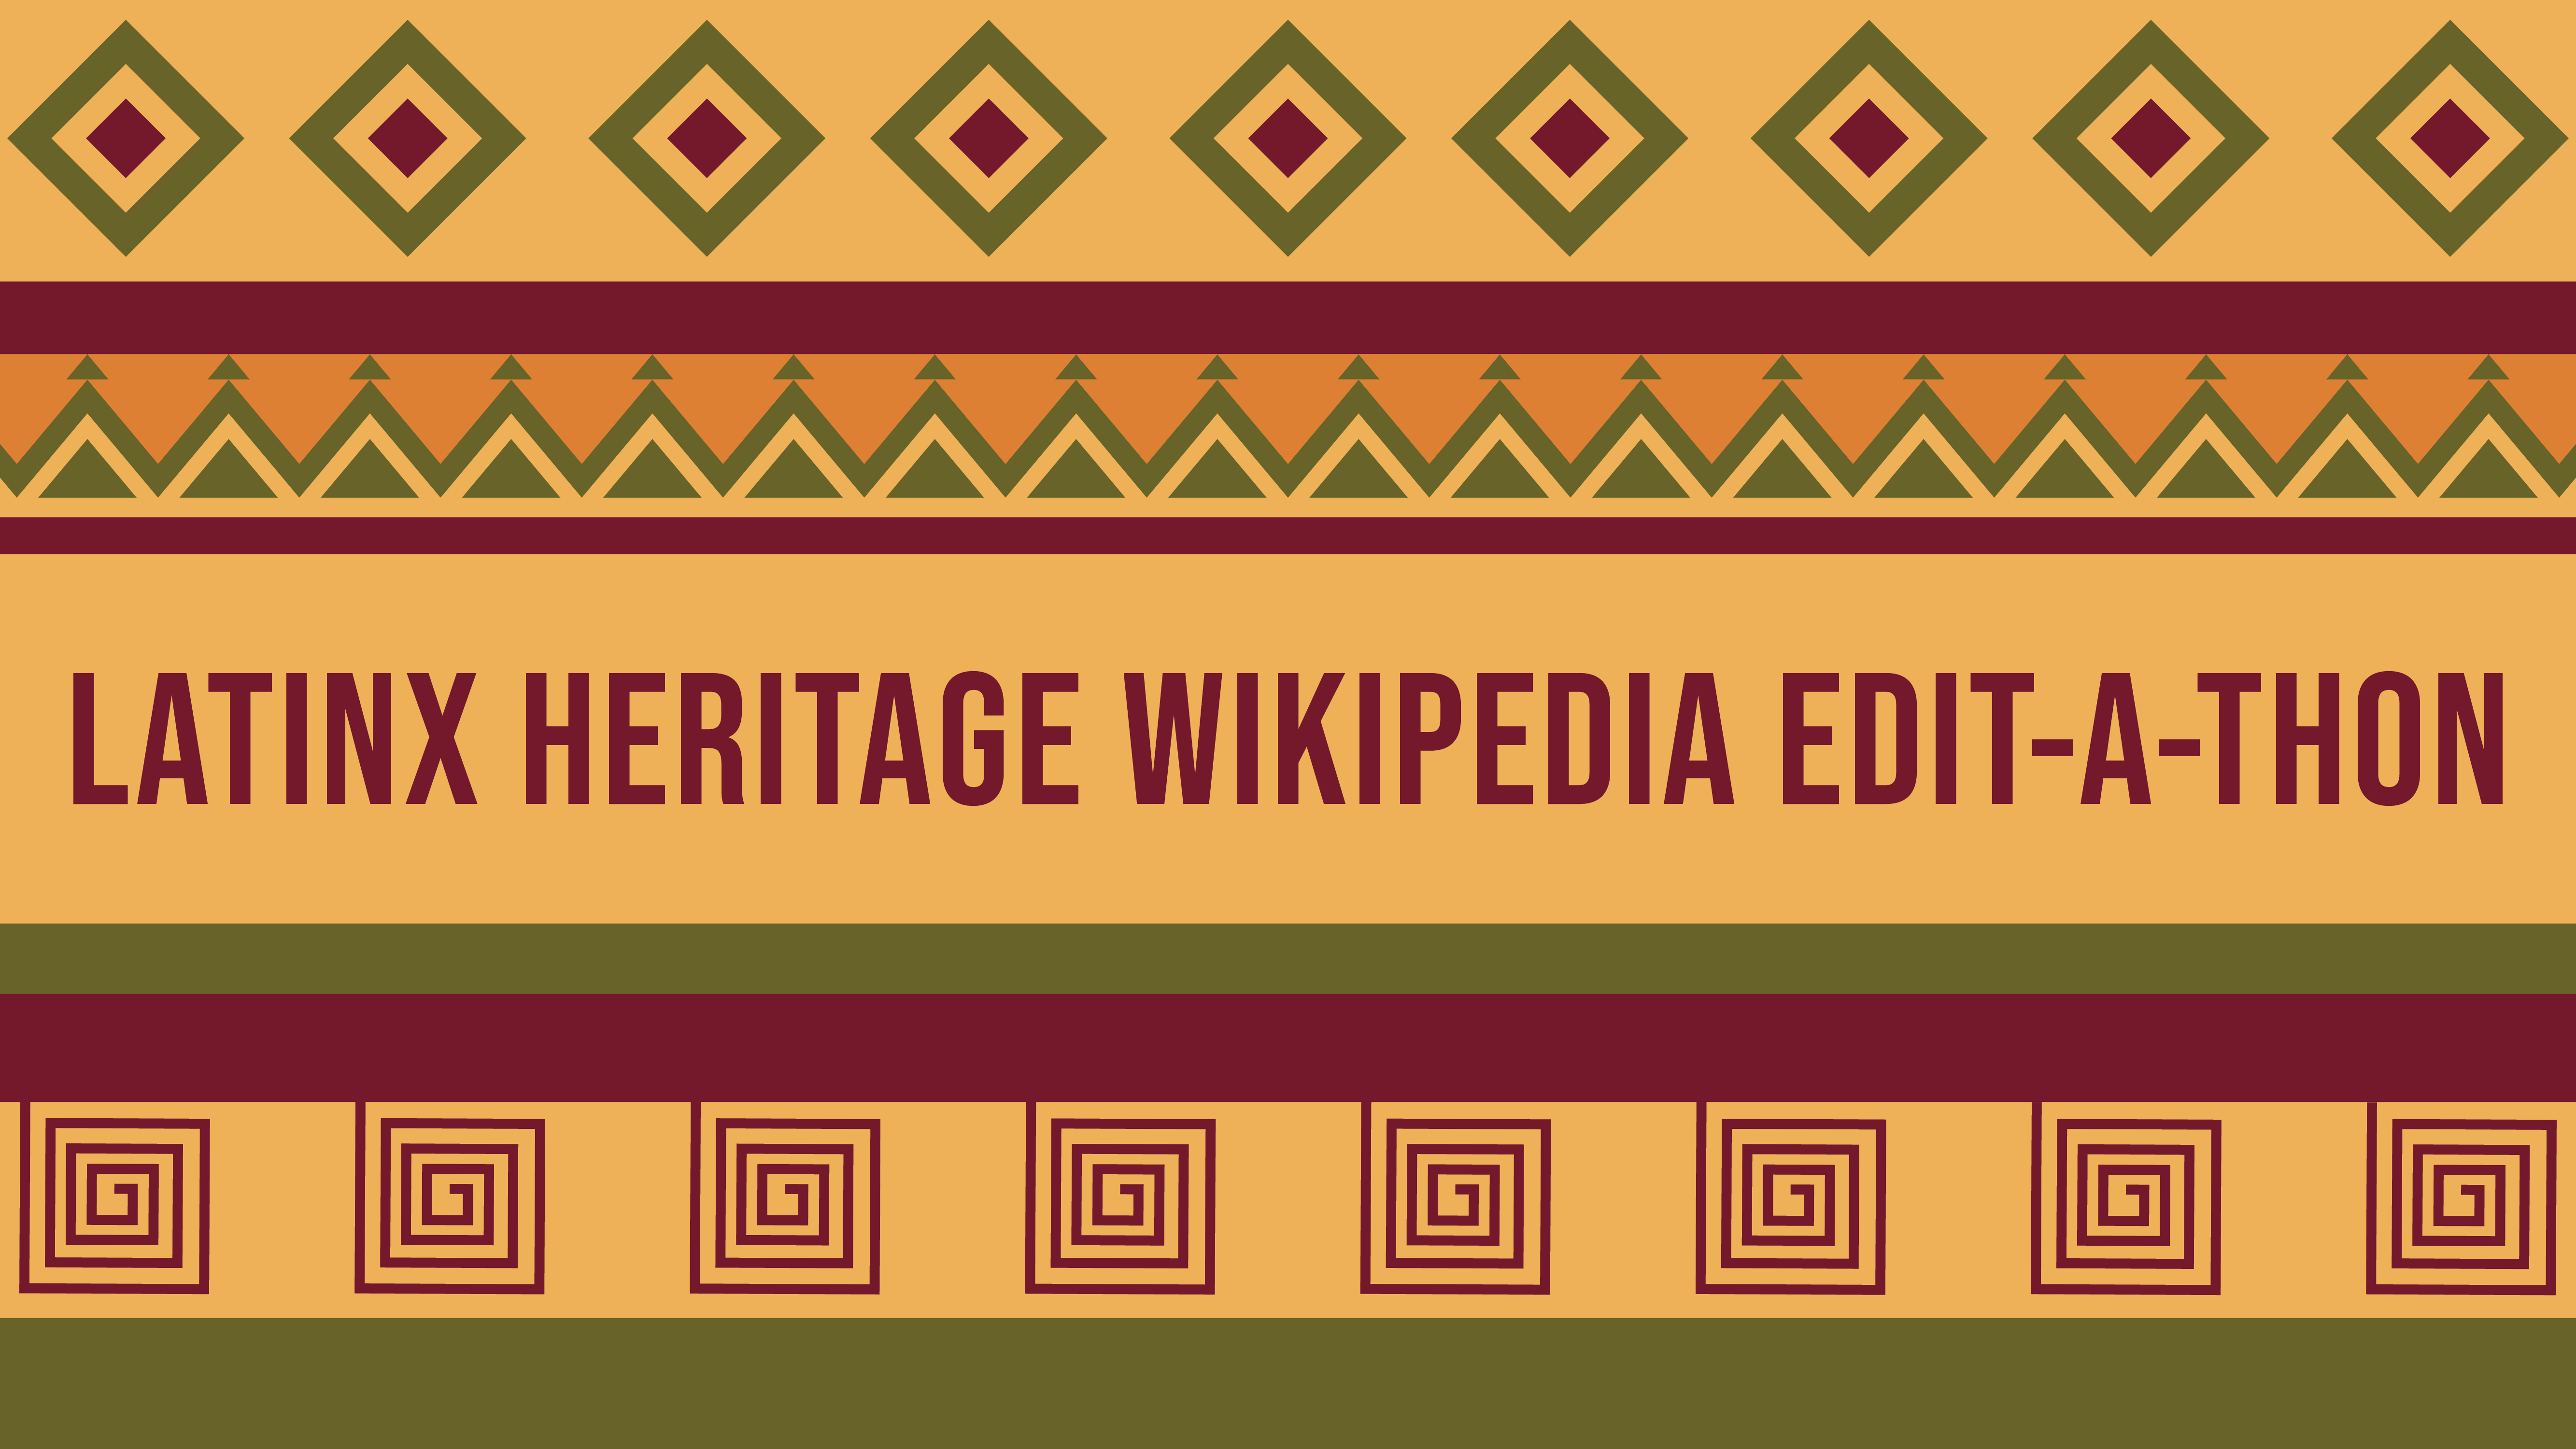 Help us improve Wikipedia articles about Latinx heritage